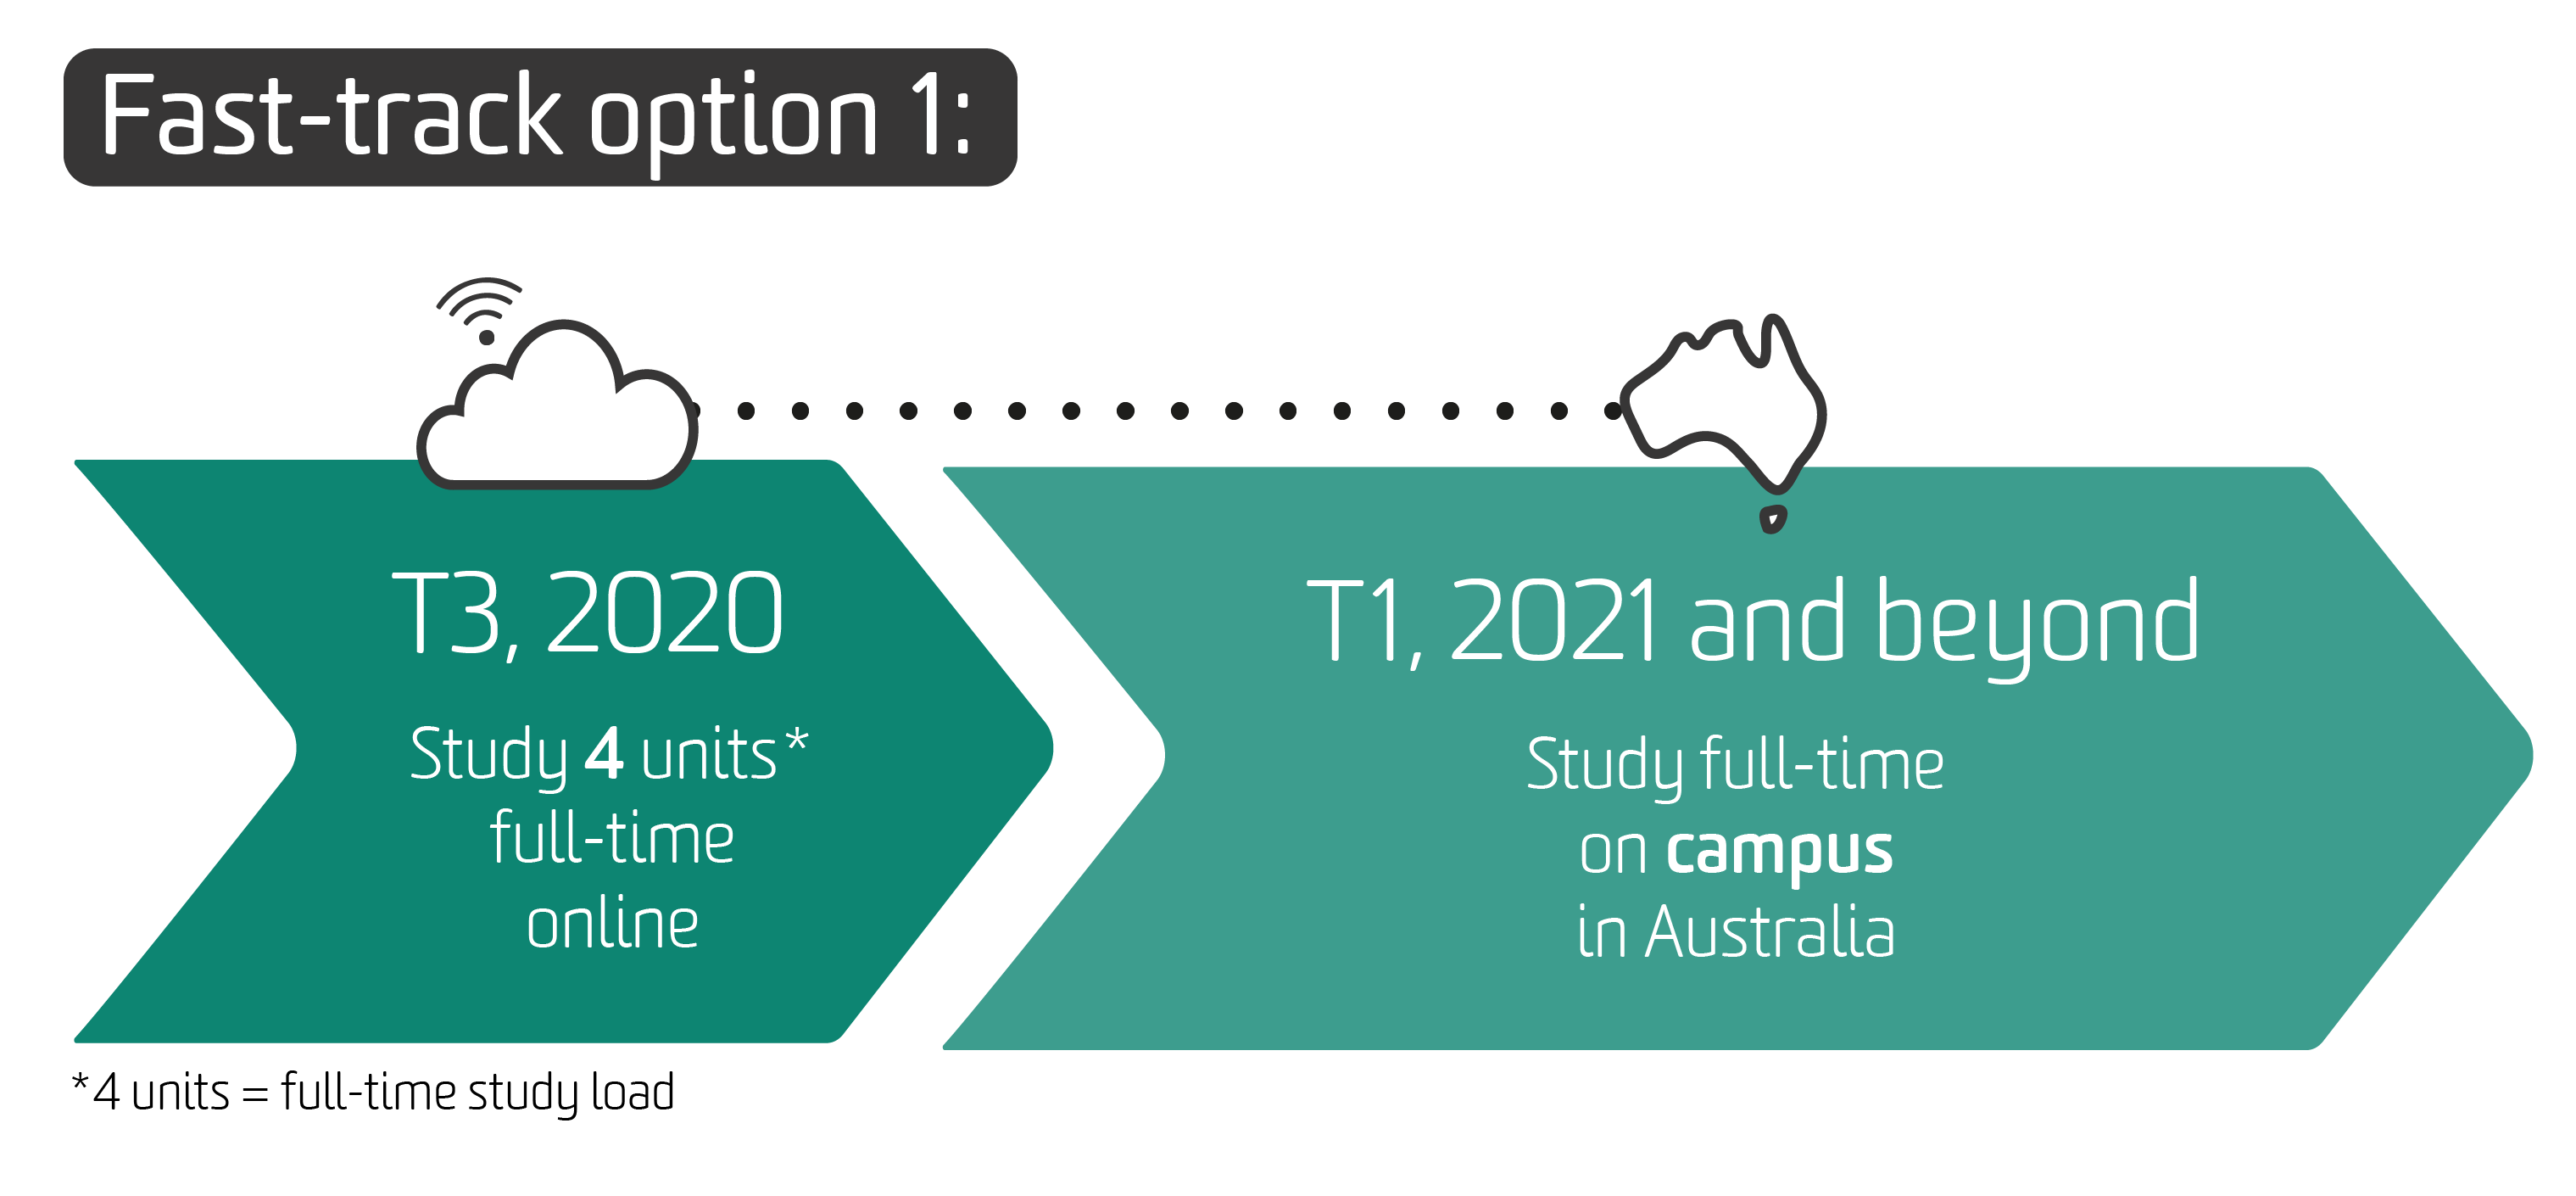 The diagram shows fast track option 1: study 4 units full-time online in Trimester 2, 2020. Then, study full time on campus in Australia in Trimester 3, 2020 and then continue full time on campus from Trimester 1 in 2021 and beyond.